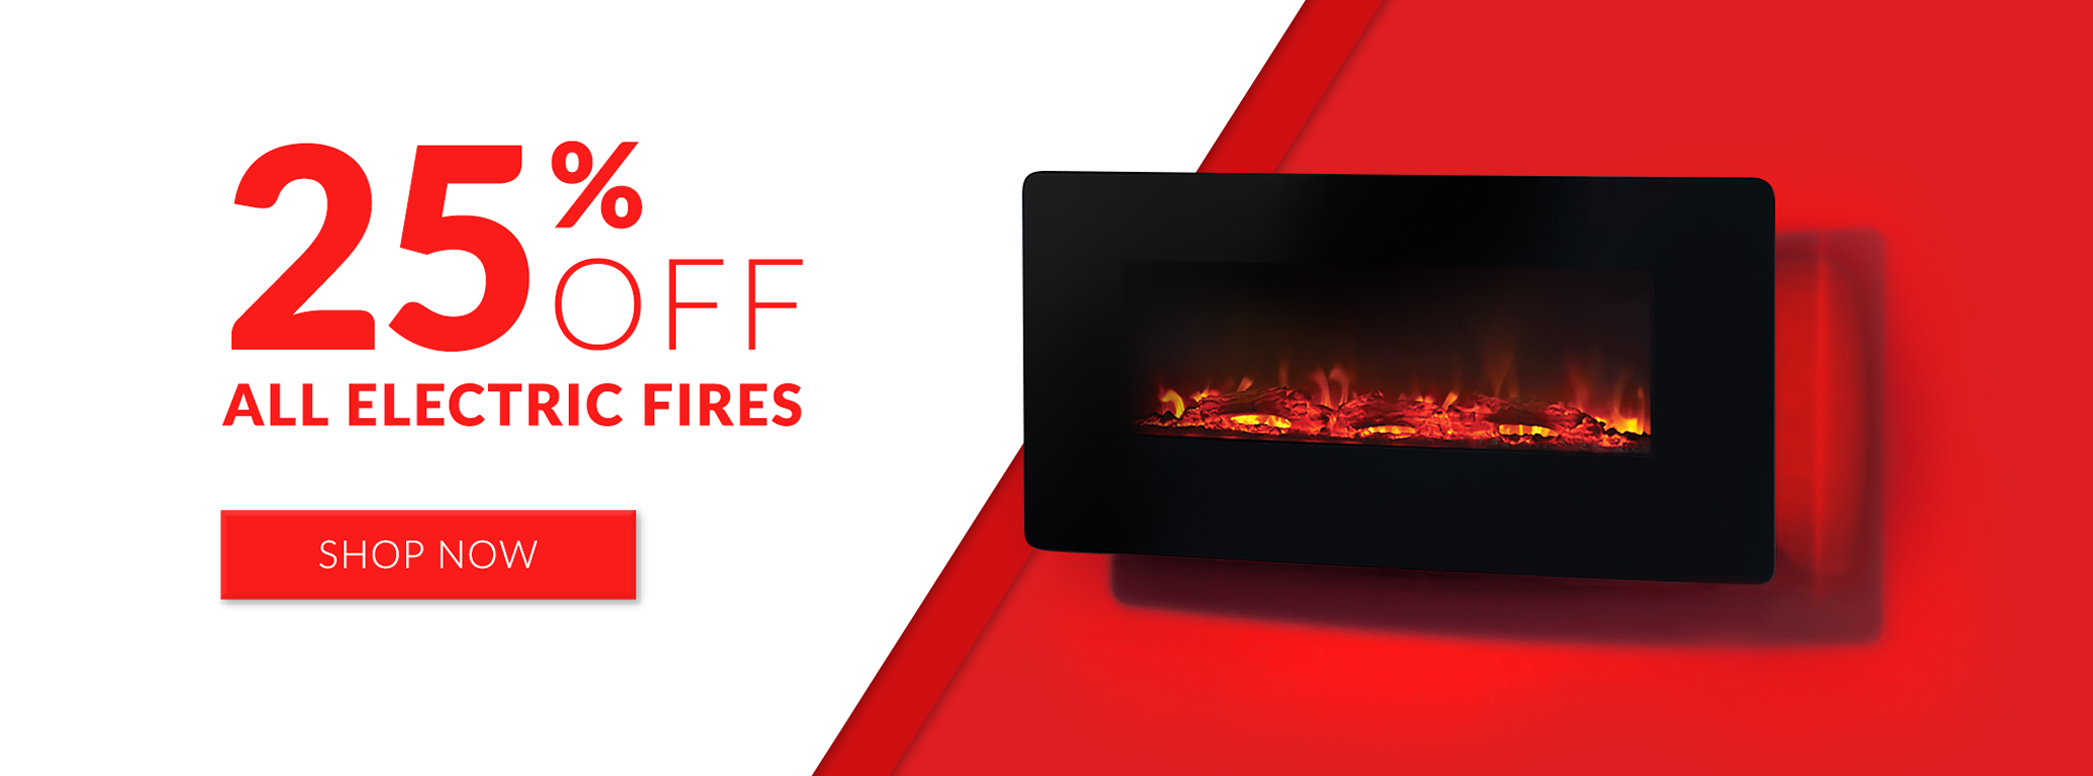 25% Off All Electric Fires